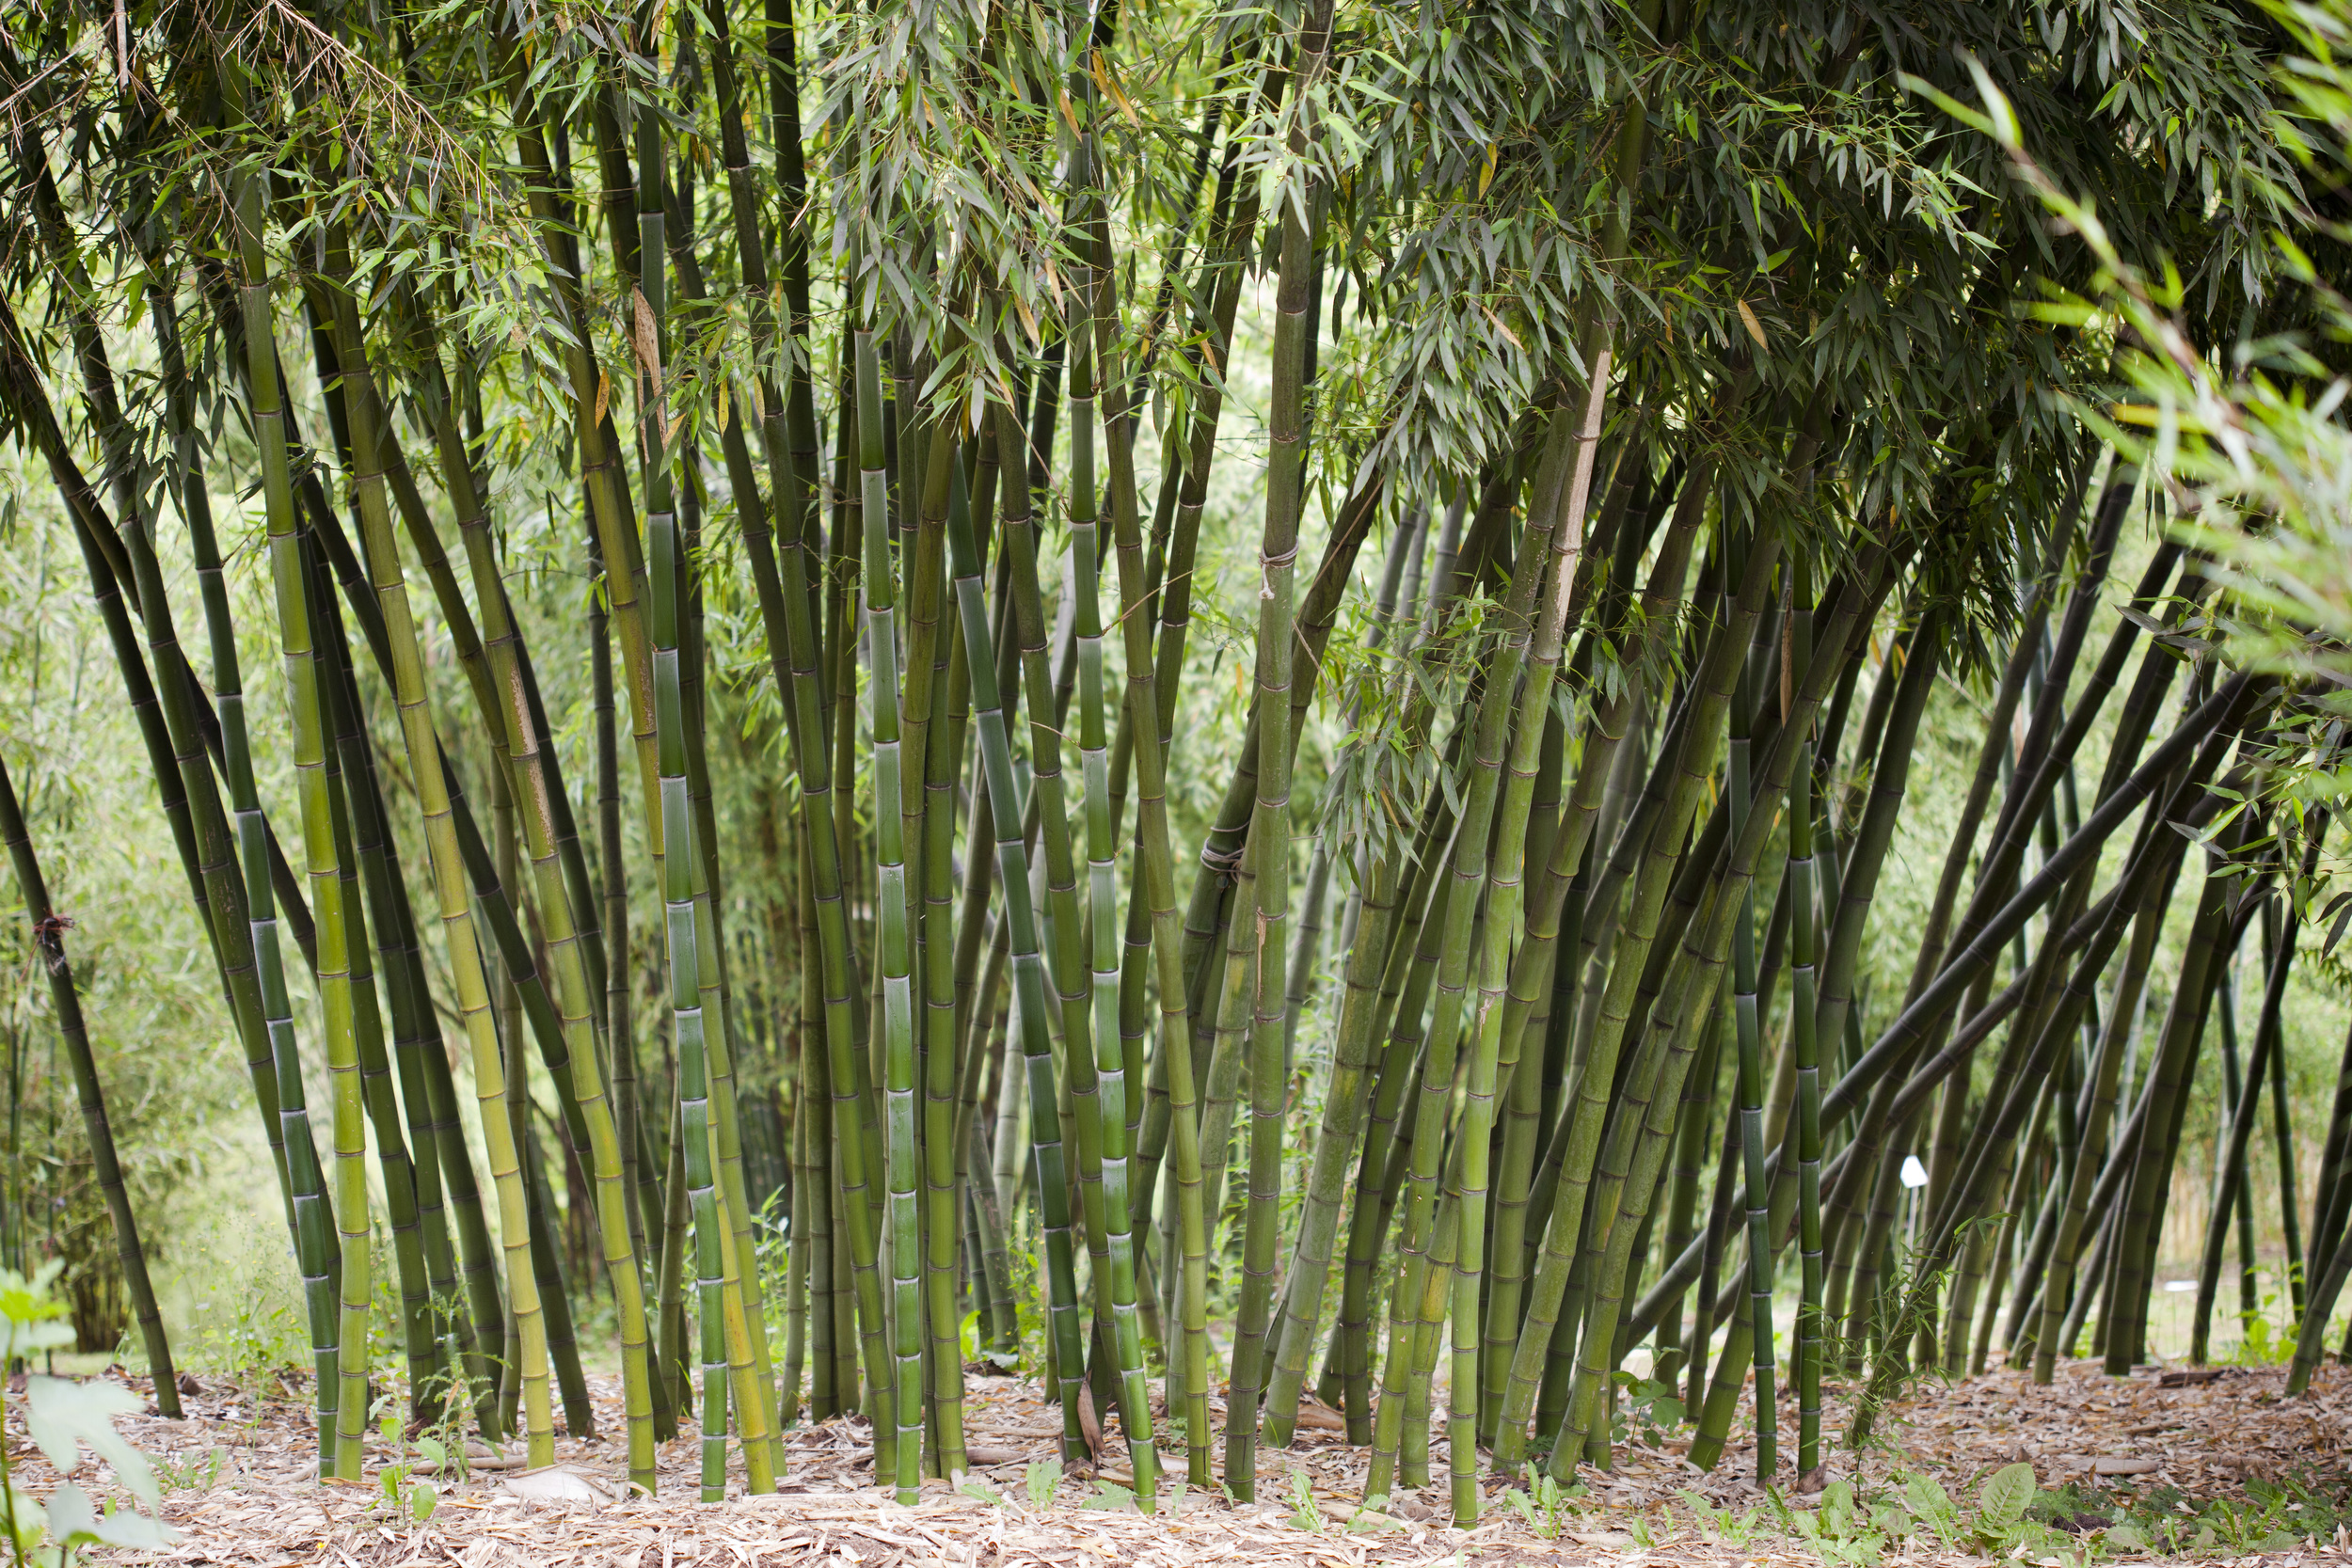 mind-your-own-bamboo.jpg